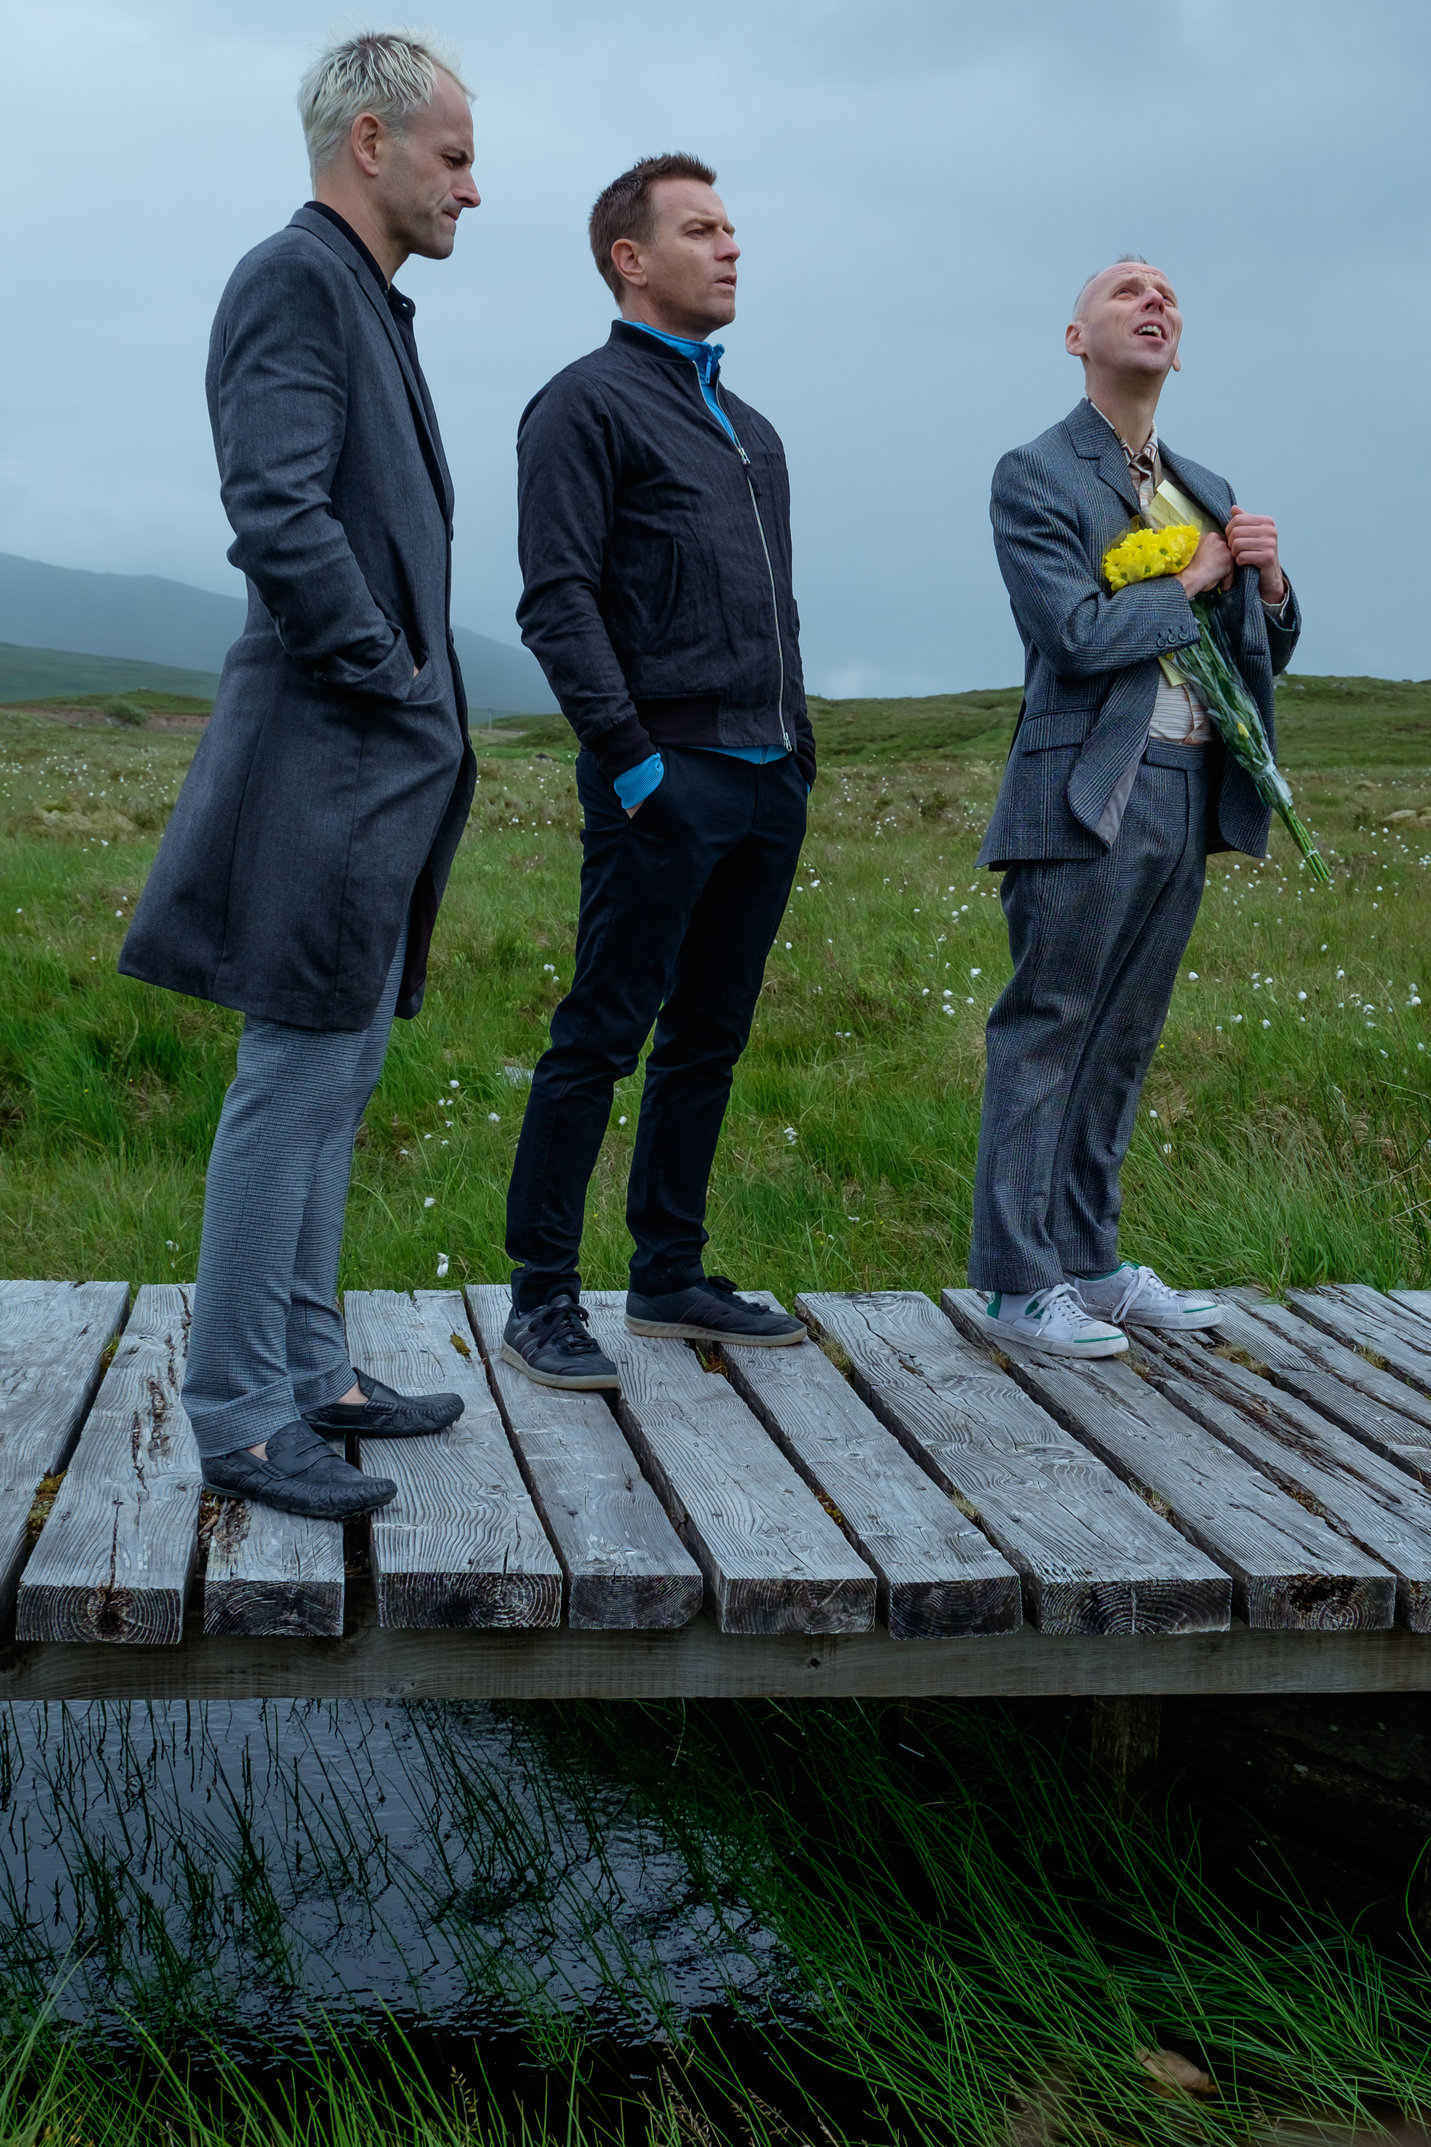 T2-JB-01447.dng <br />Simon (Jonny Lee Miller), Mark Renton (Ewan McGregor) and Spud (Ewen Bremner) in the great outdoors